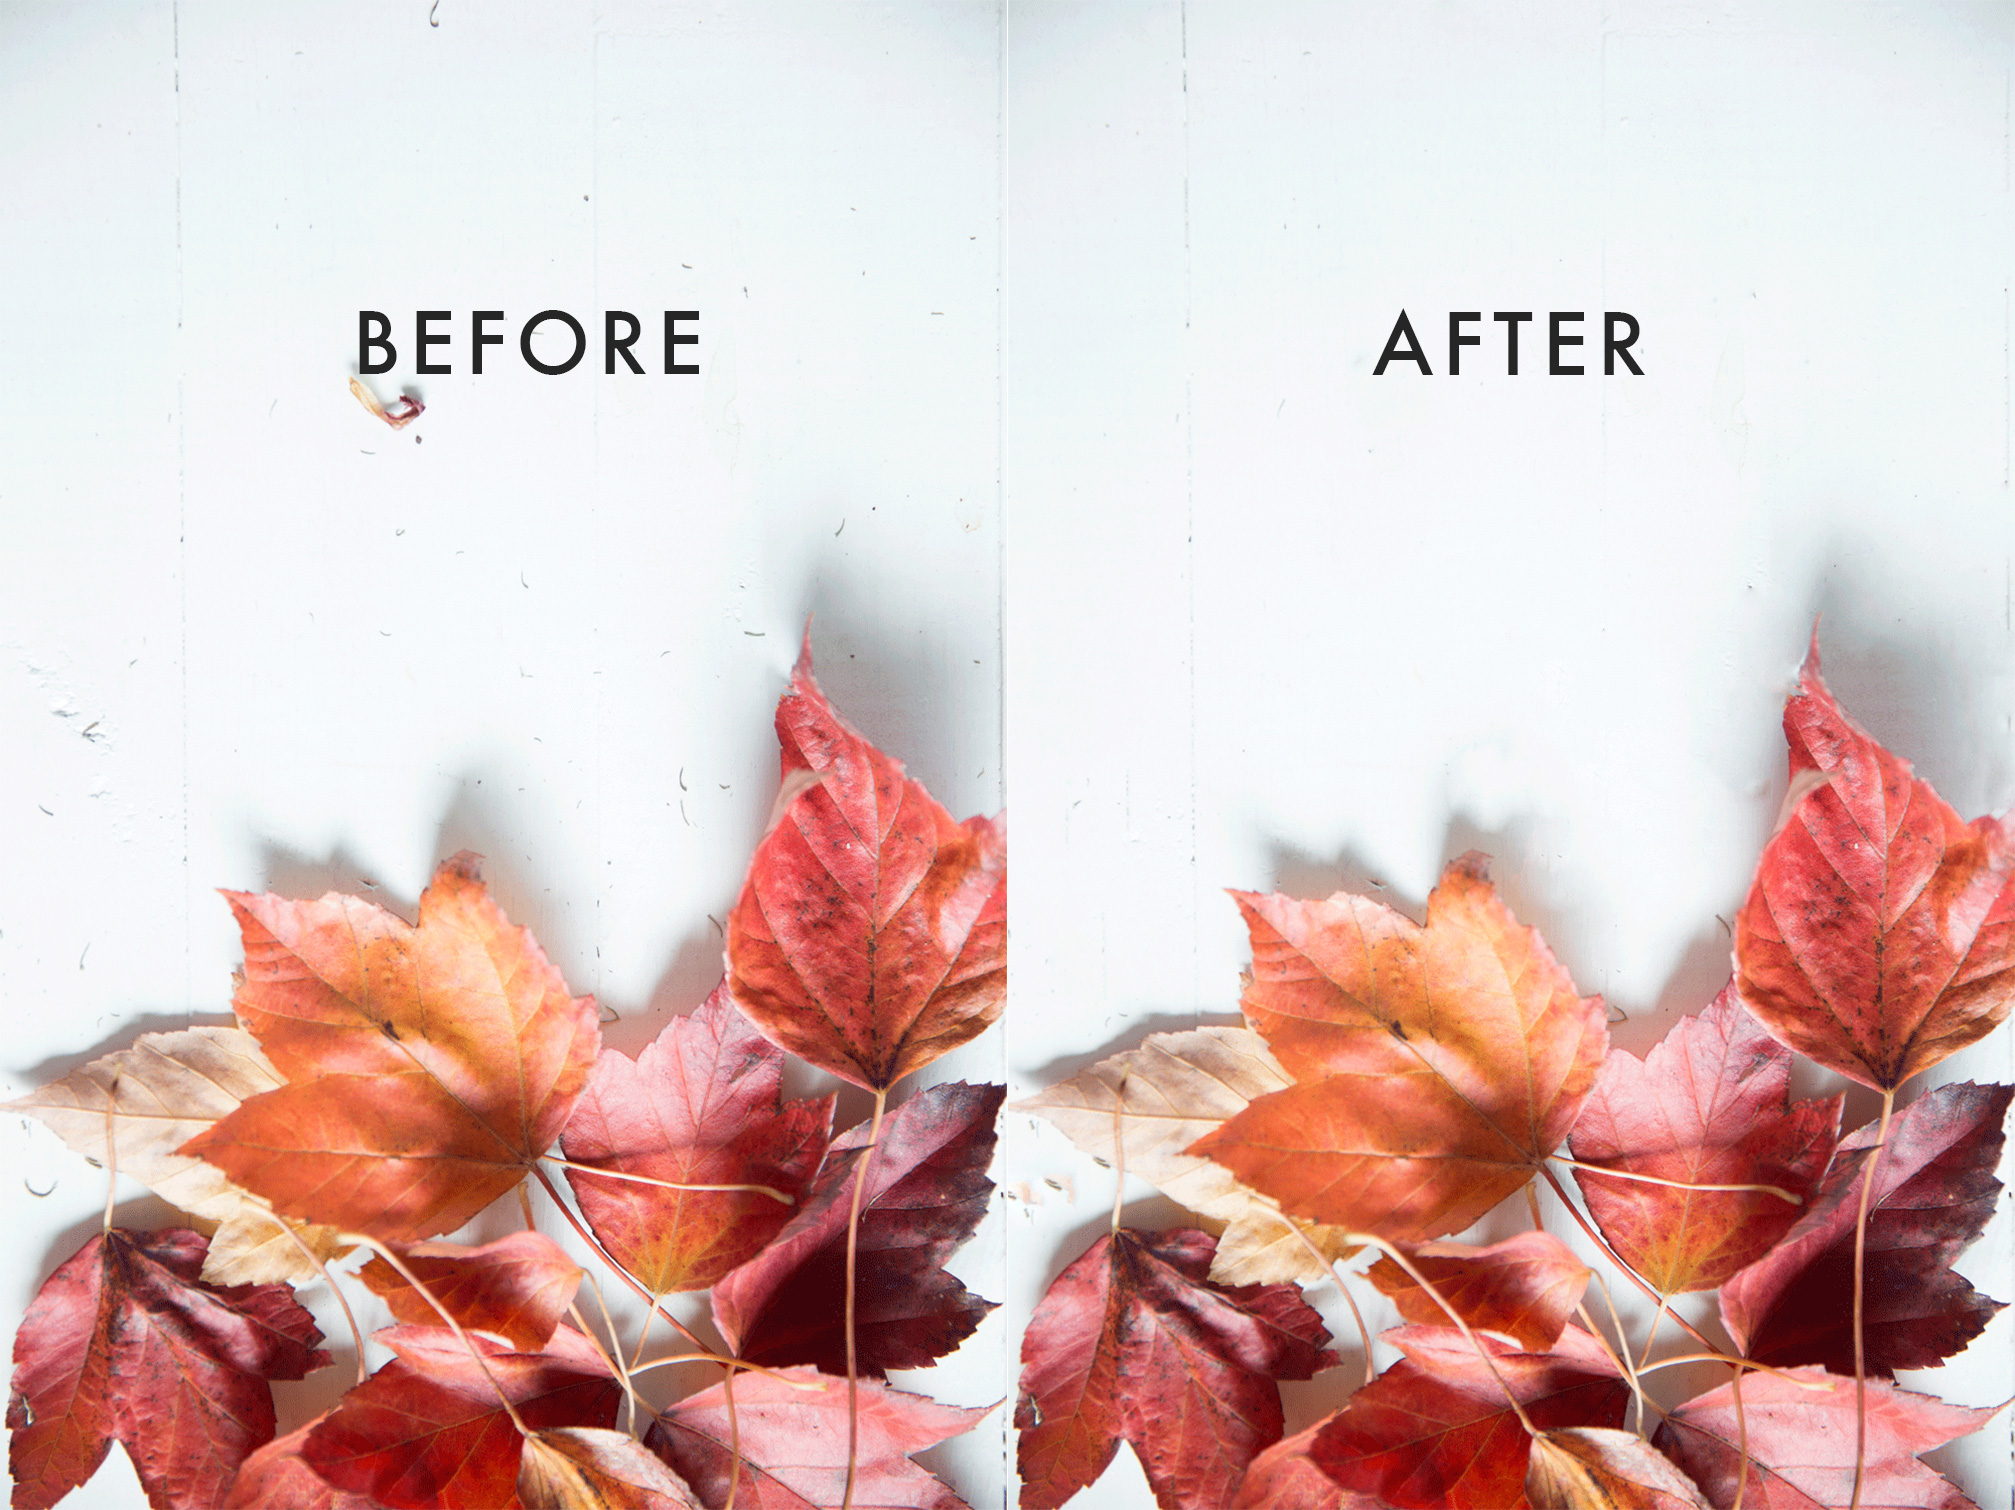 Want bright clean photos for your blog? Here is a 2 minute tutorial on how to achieve clean flawless photos using photoshop!